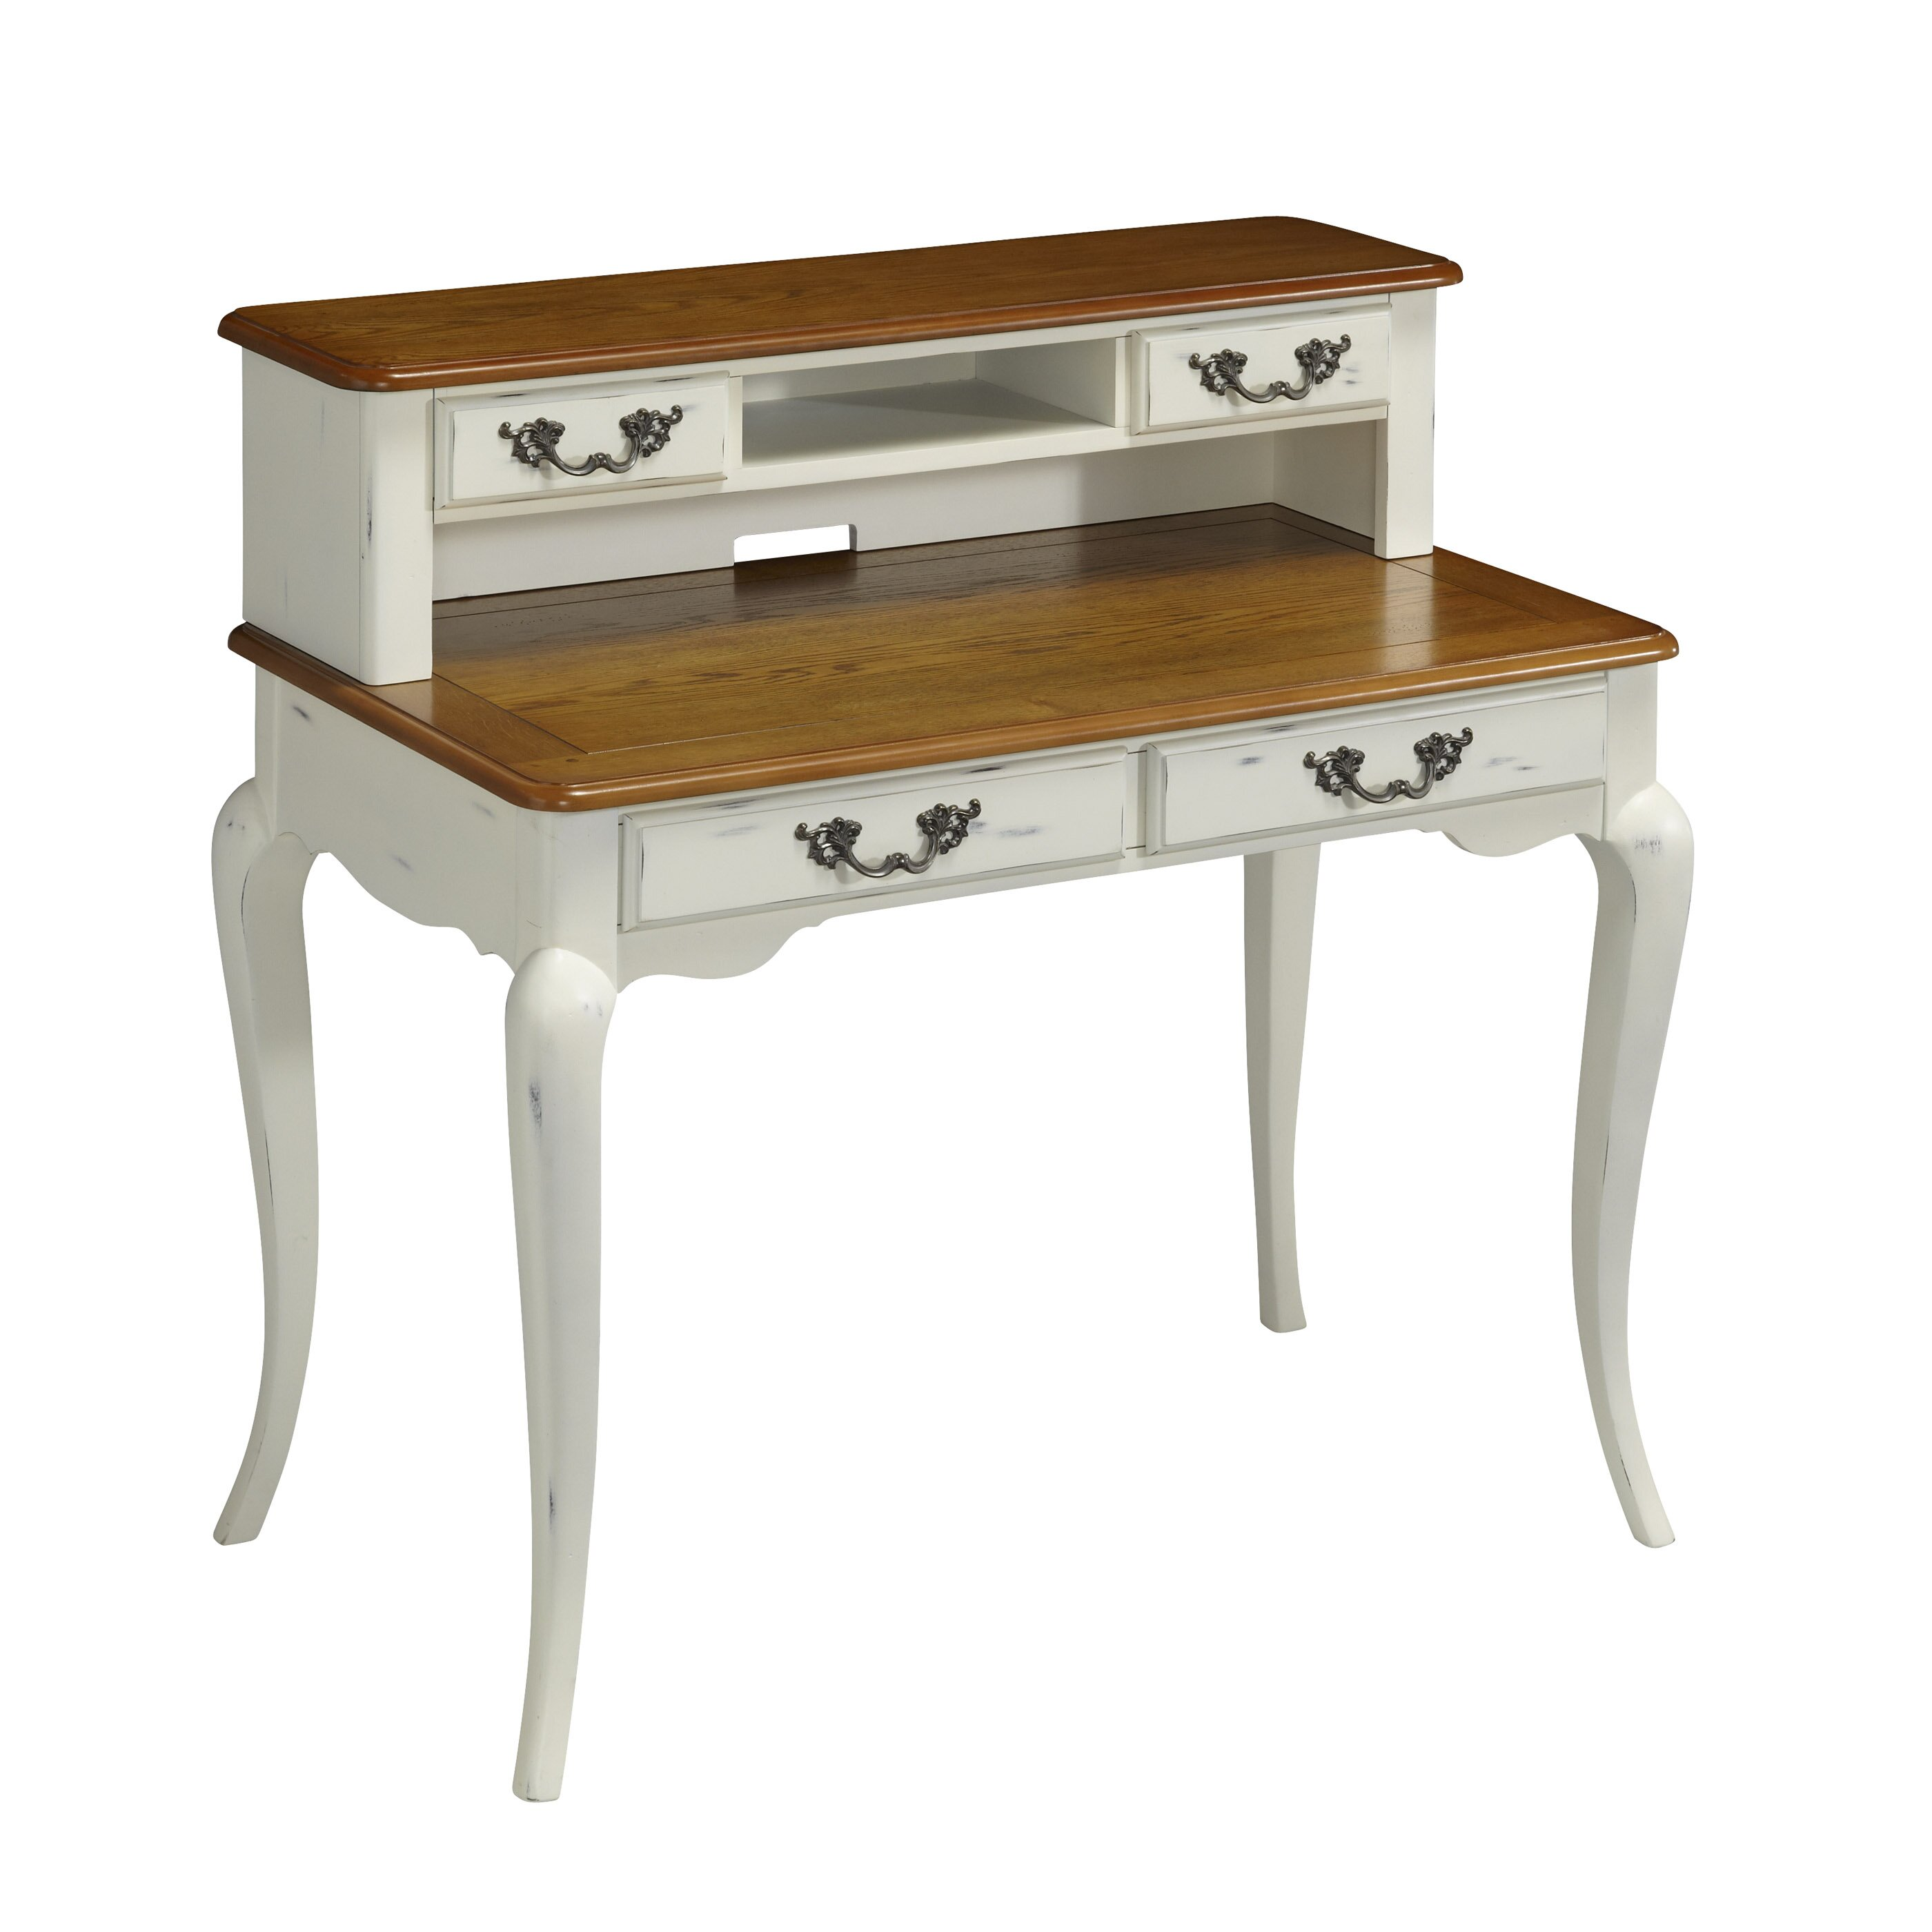 Very Impressive portraiture of Home Styles French Countryside Writing Desk & Reviews Wayfair with #6A441C color and 2800x2800 pixels